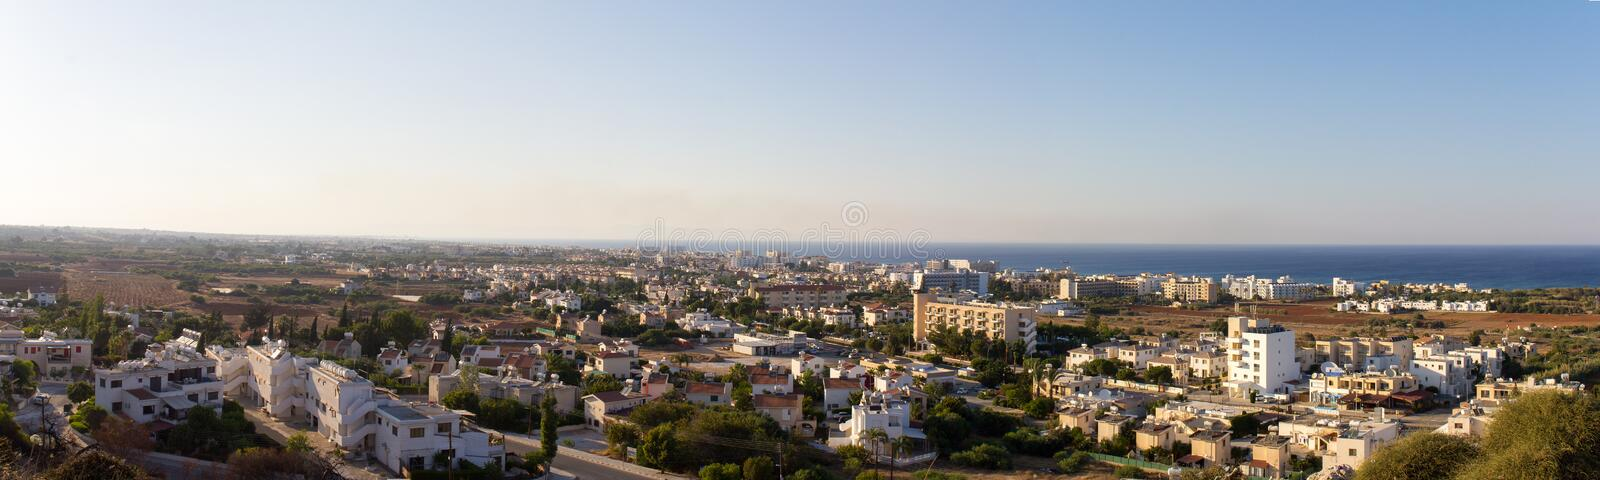 Cyprus. Protaras. Top view of the panorama of Protaras at sunset. The photo was taken in the city of Protaras in Cyprus. Panorama pieced together from multiple stock image